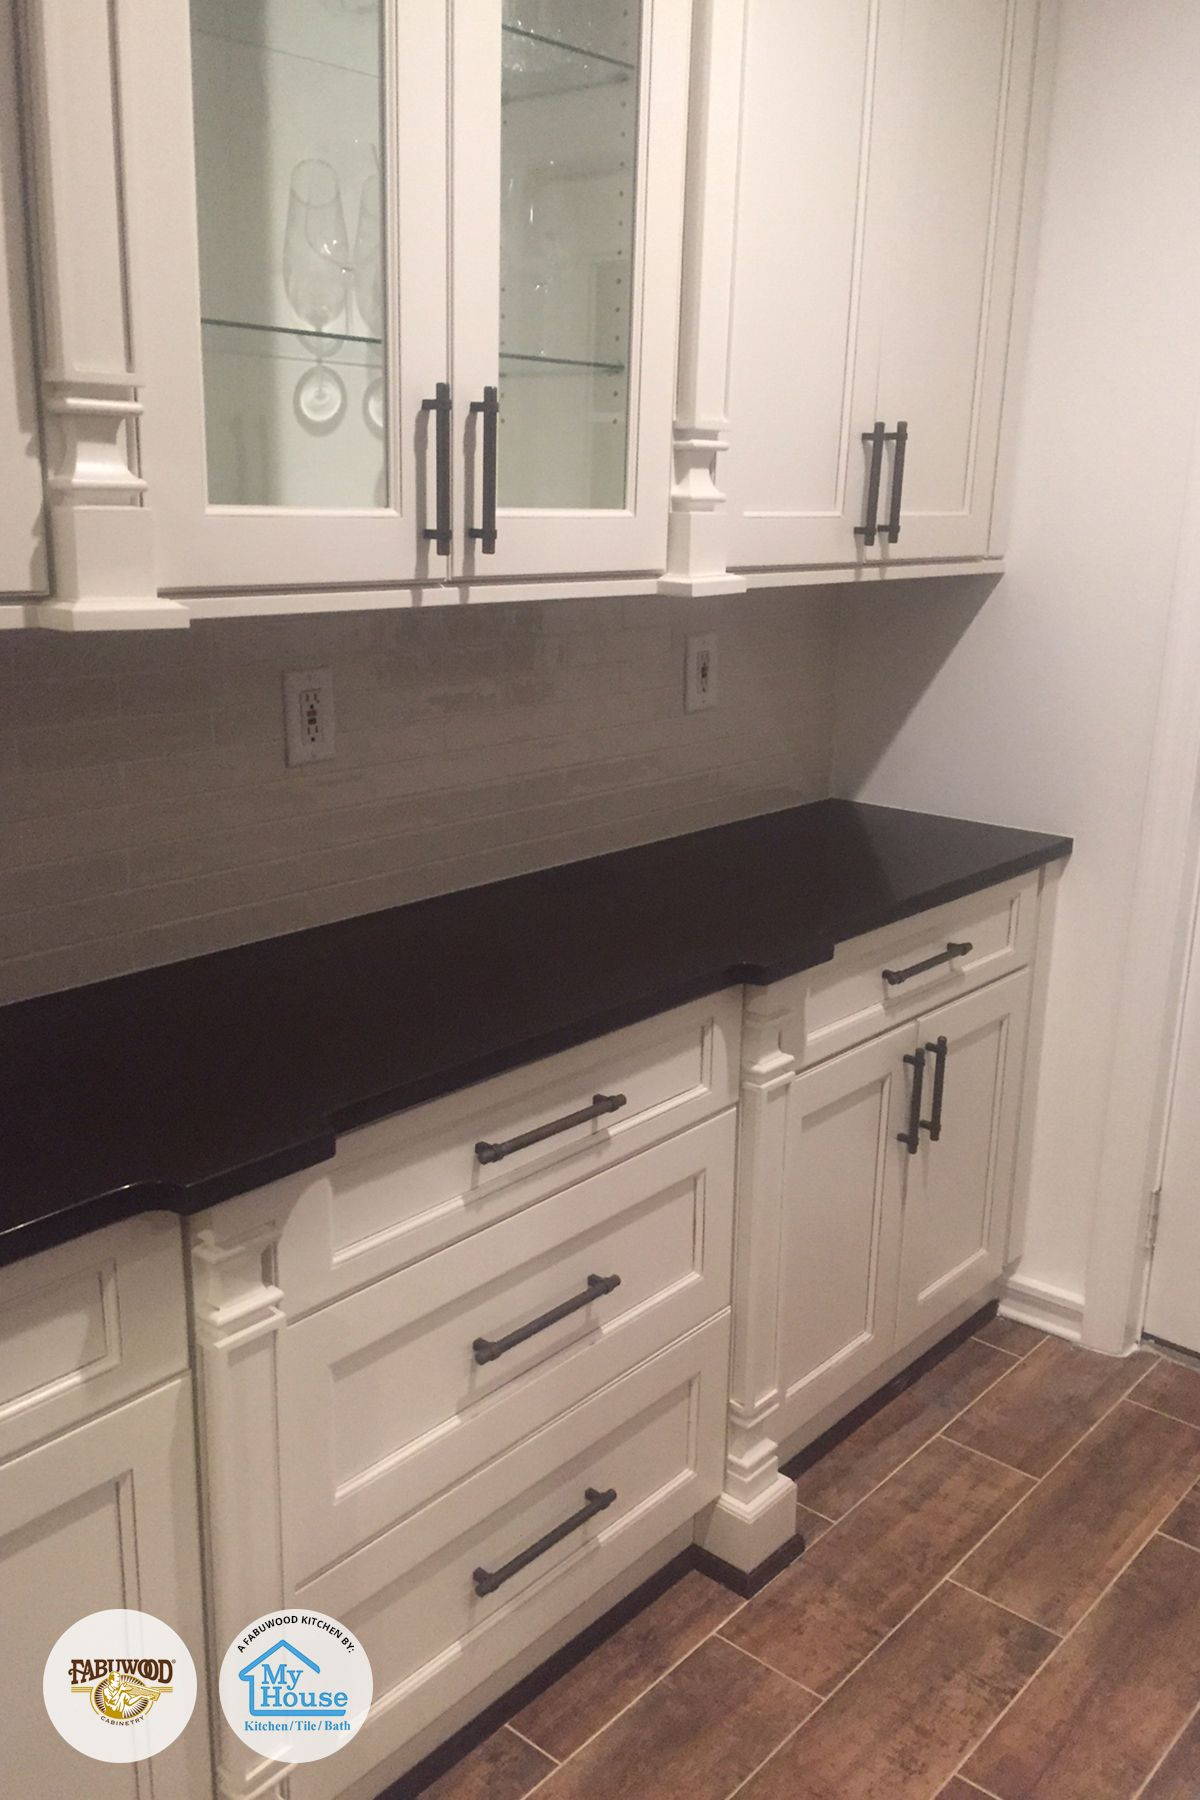 Clean Lines And Just A Hint Of The Unexpected In The Crown Moulding This Fusion Kitchen In Blanc Is Simplicity At I Home Kitchens Fabuwood Cabinets Kitchen